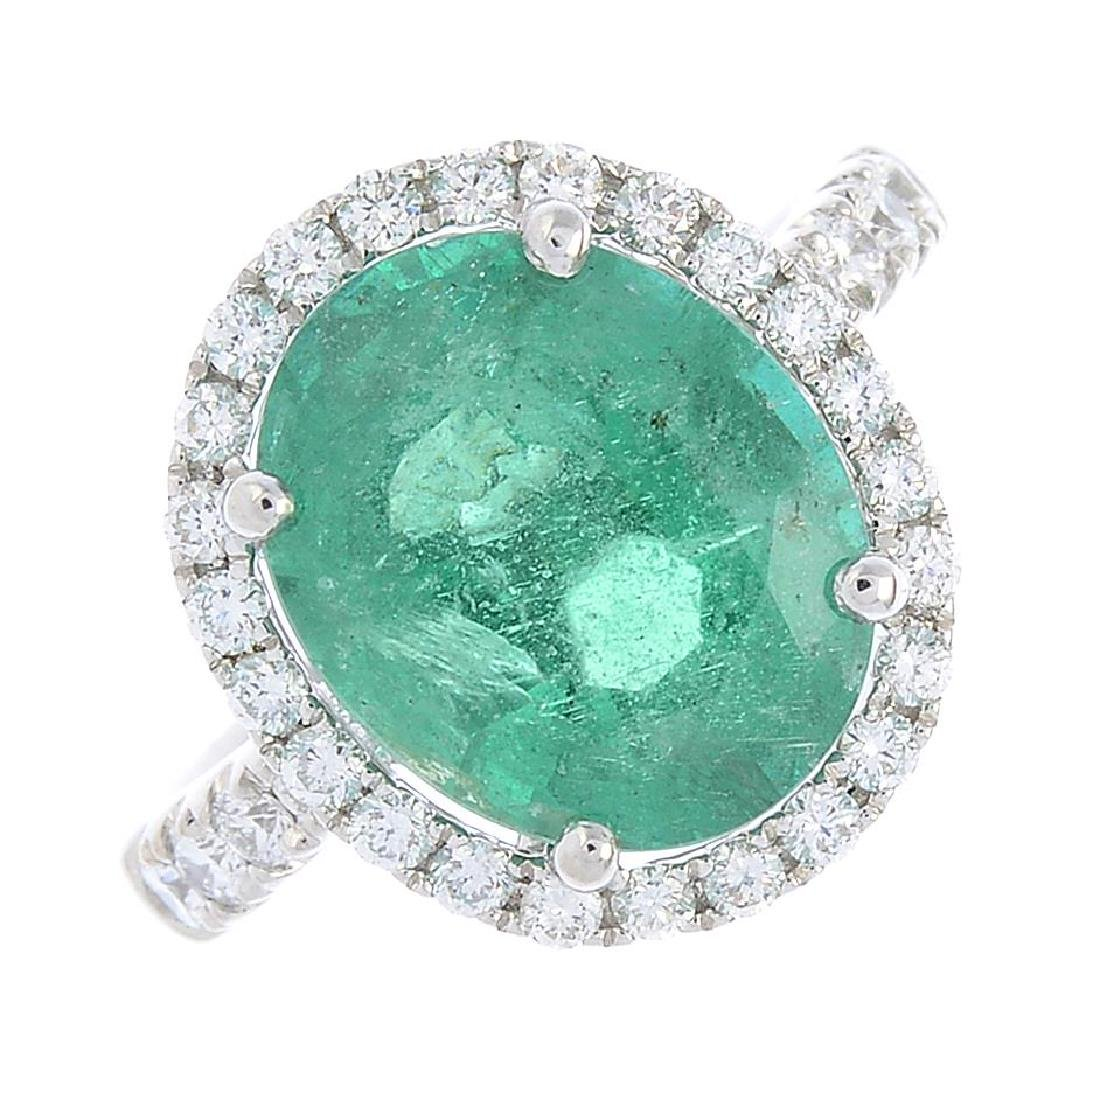 A emerald and diamond dress ring. The oval-shape